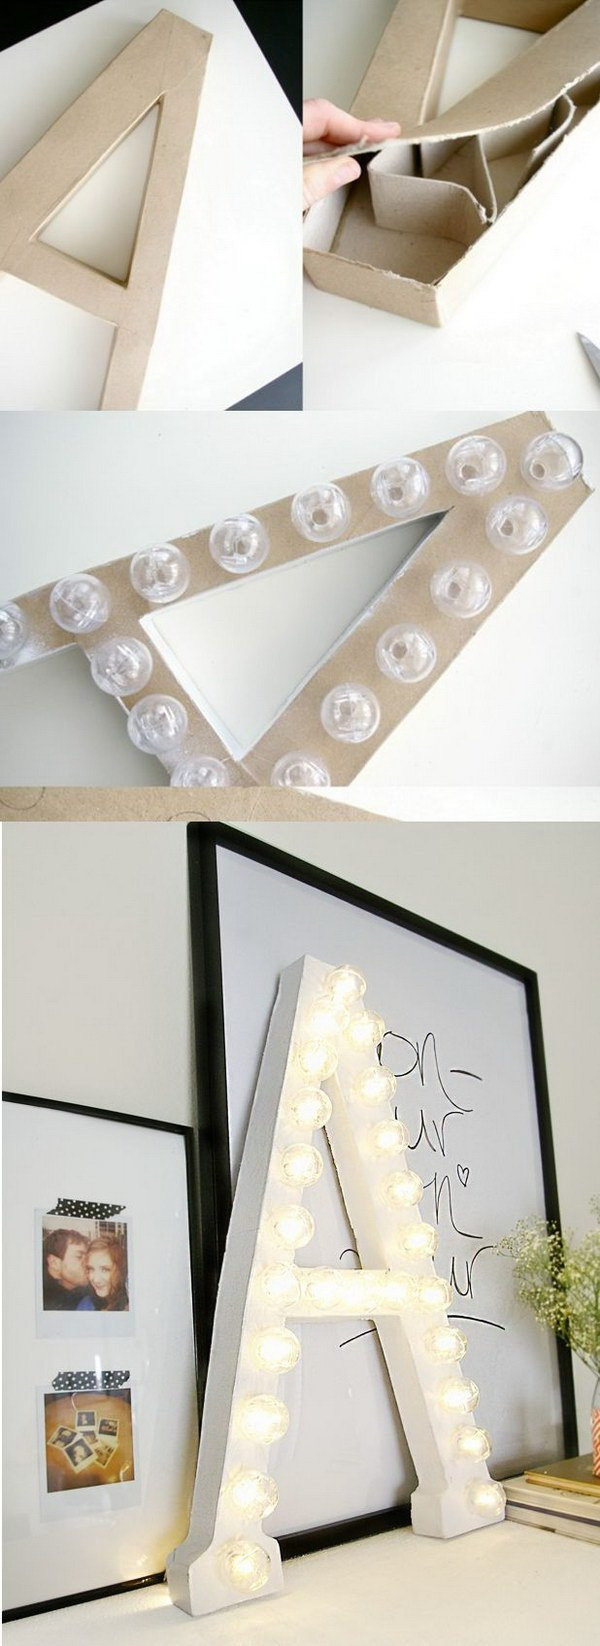 DIY Marquee Letters from Cardboard: Another stylish DIY project for teen girls' room decor! It must be every girl's wish list.